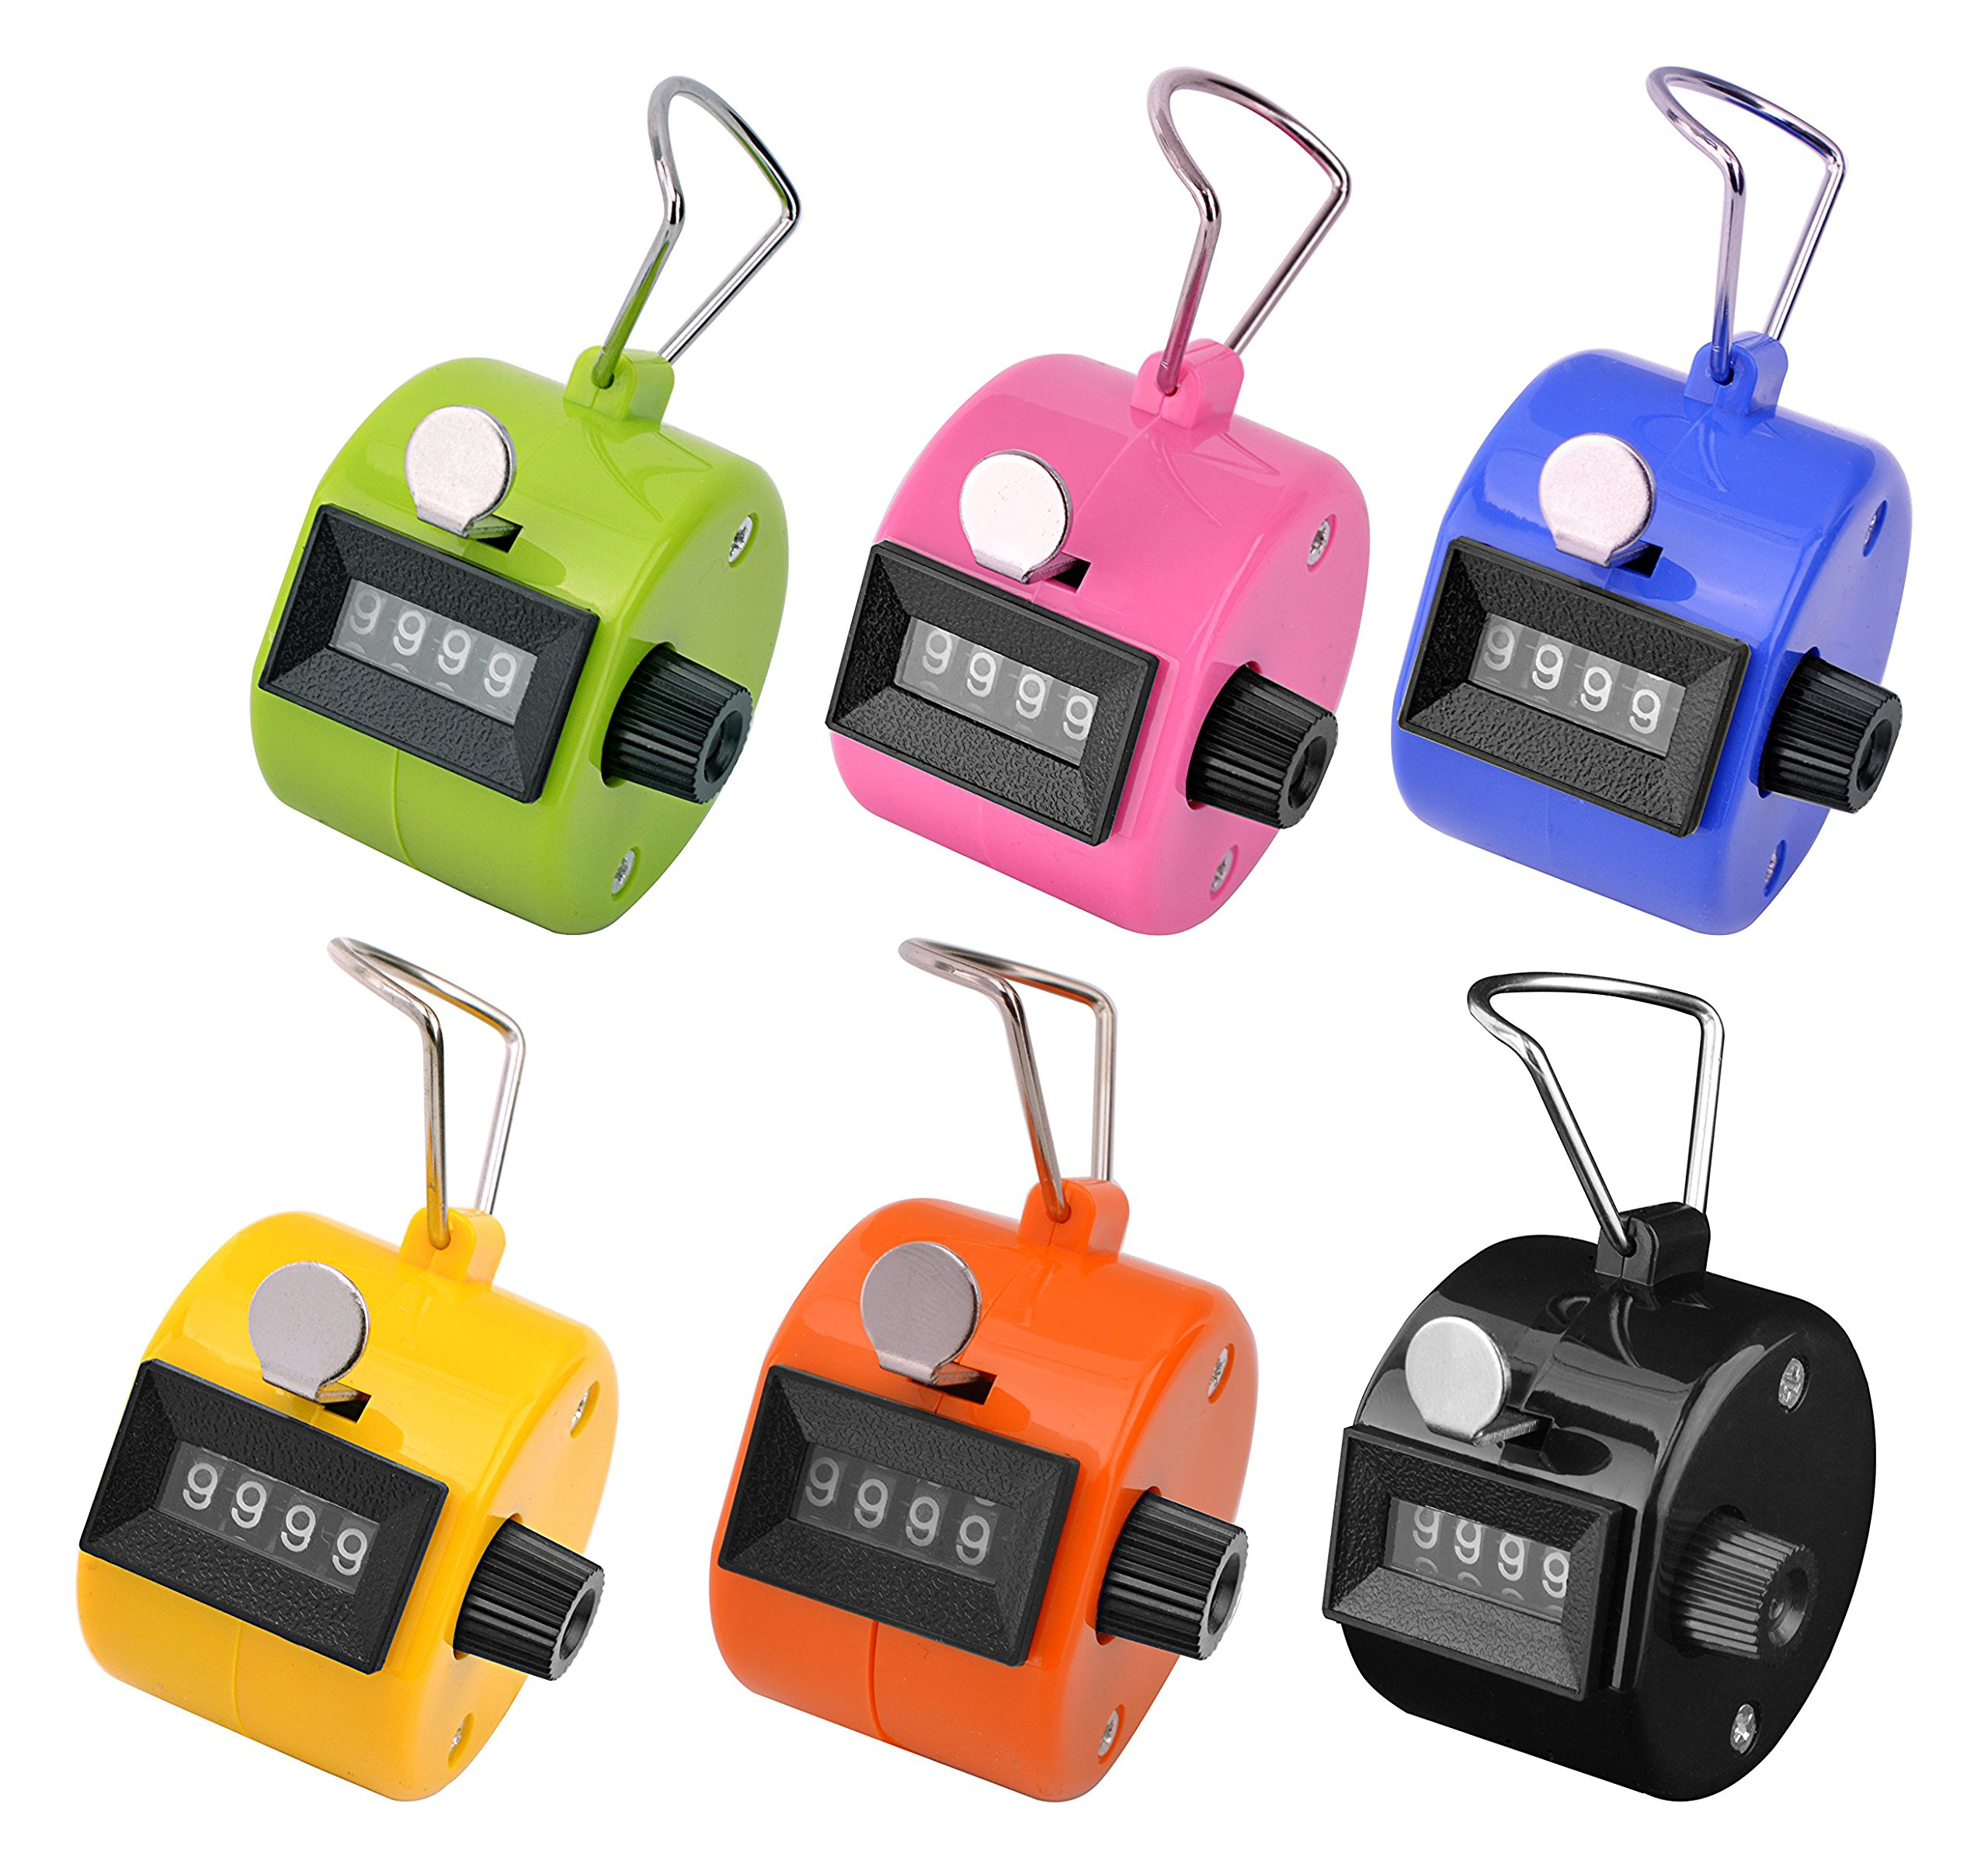 d5b18268d29f KTRIO Pack of 6 Color Hand Tally Counter 4 Digit Tally Counter Mechanical  Palm Click Counter